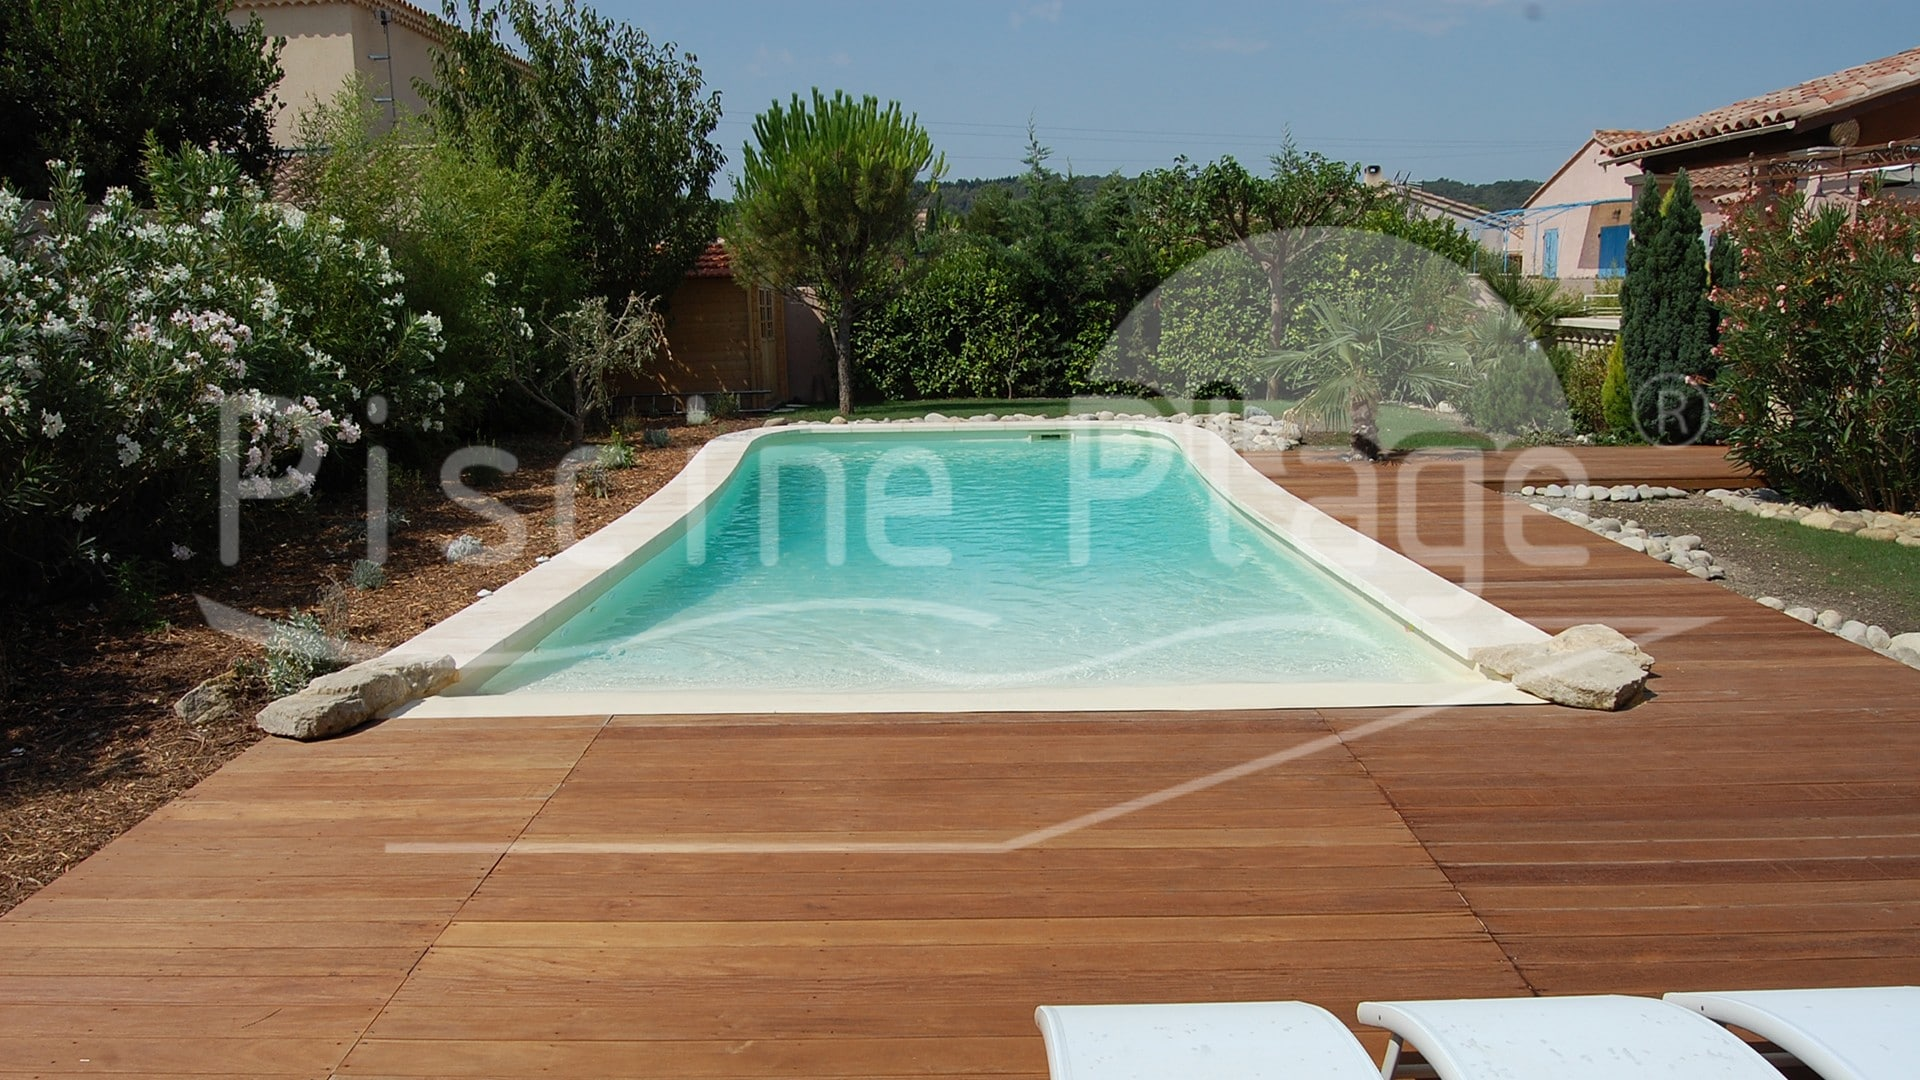 Piscine naturelle cologique et innovante piscine plage for Piscine design plage